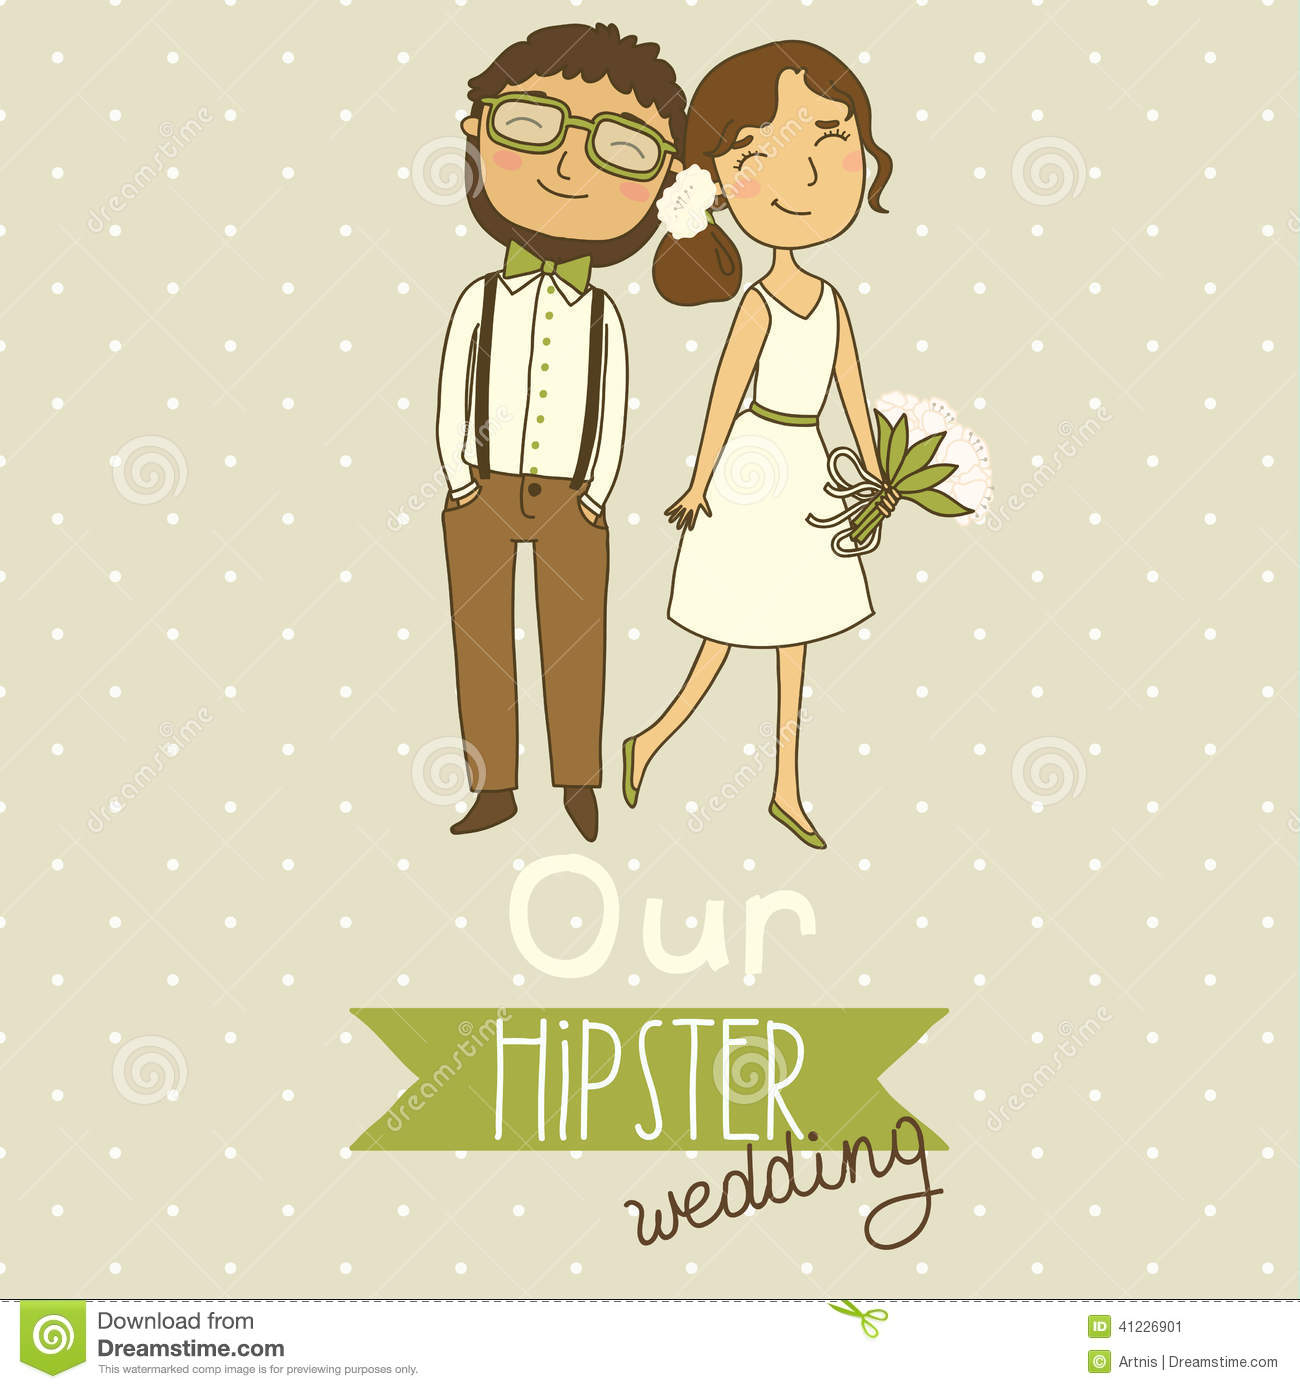 stock illustration wedding invitation cute couple hipsters our hipster image cute wedding invitations Wedding invitation with a cute couple